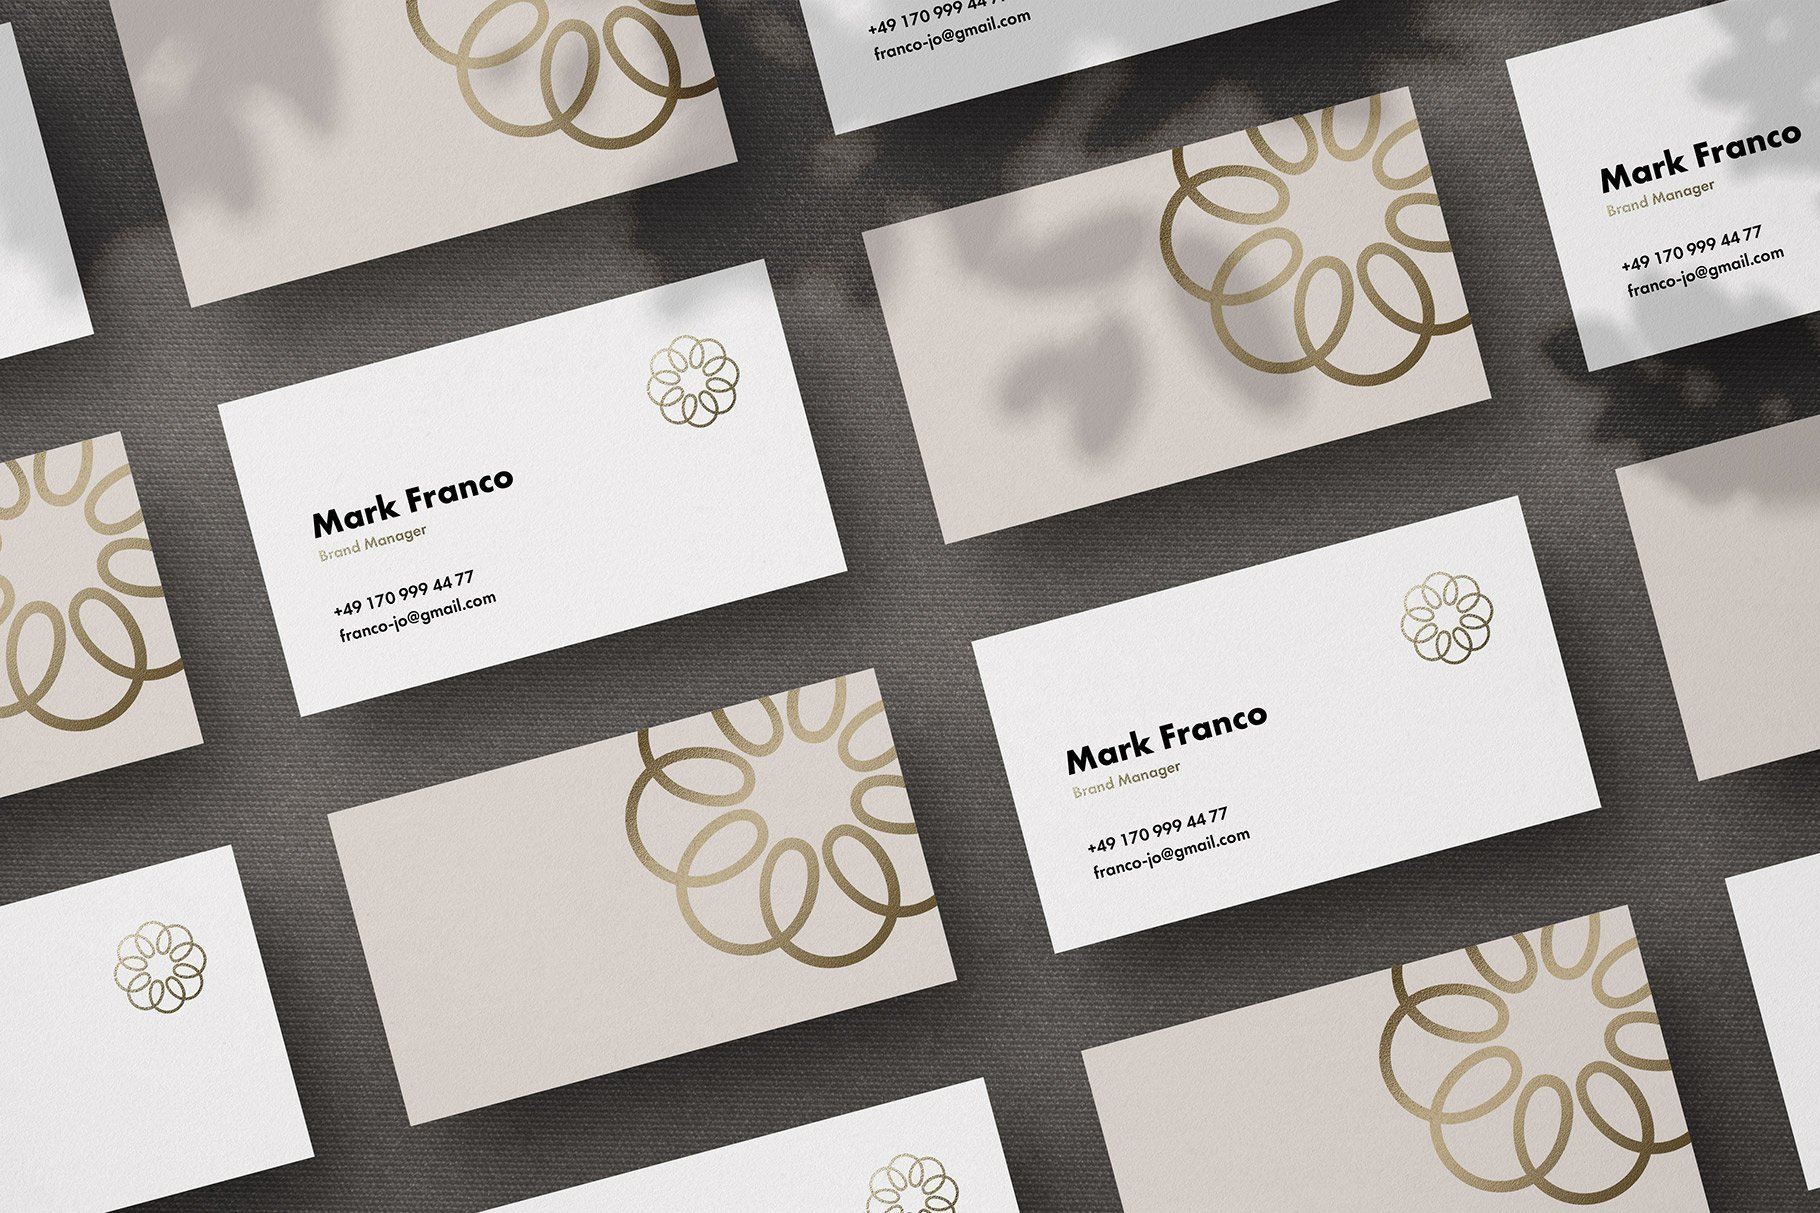 Mote Free Business Card Mockup 4